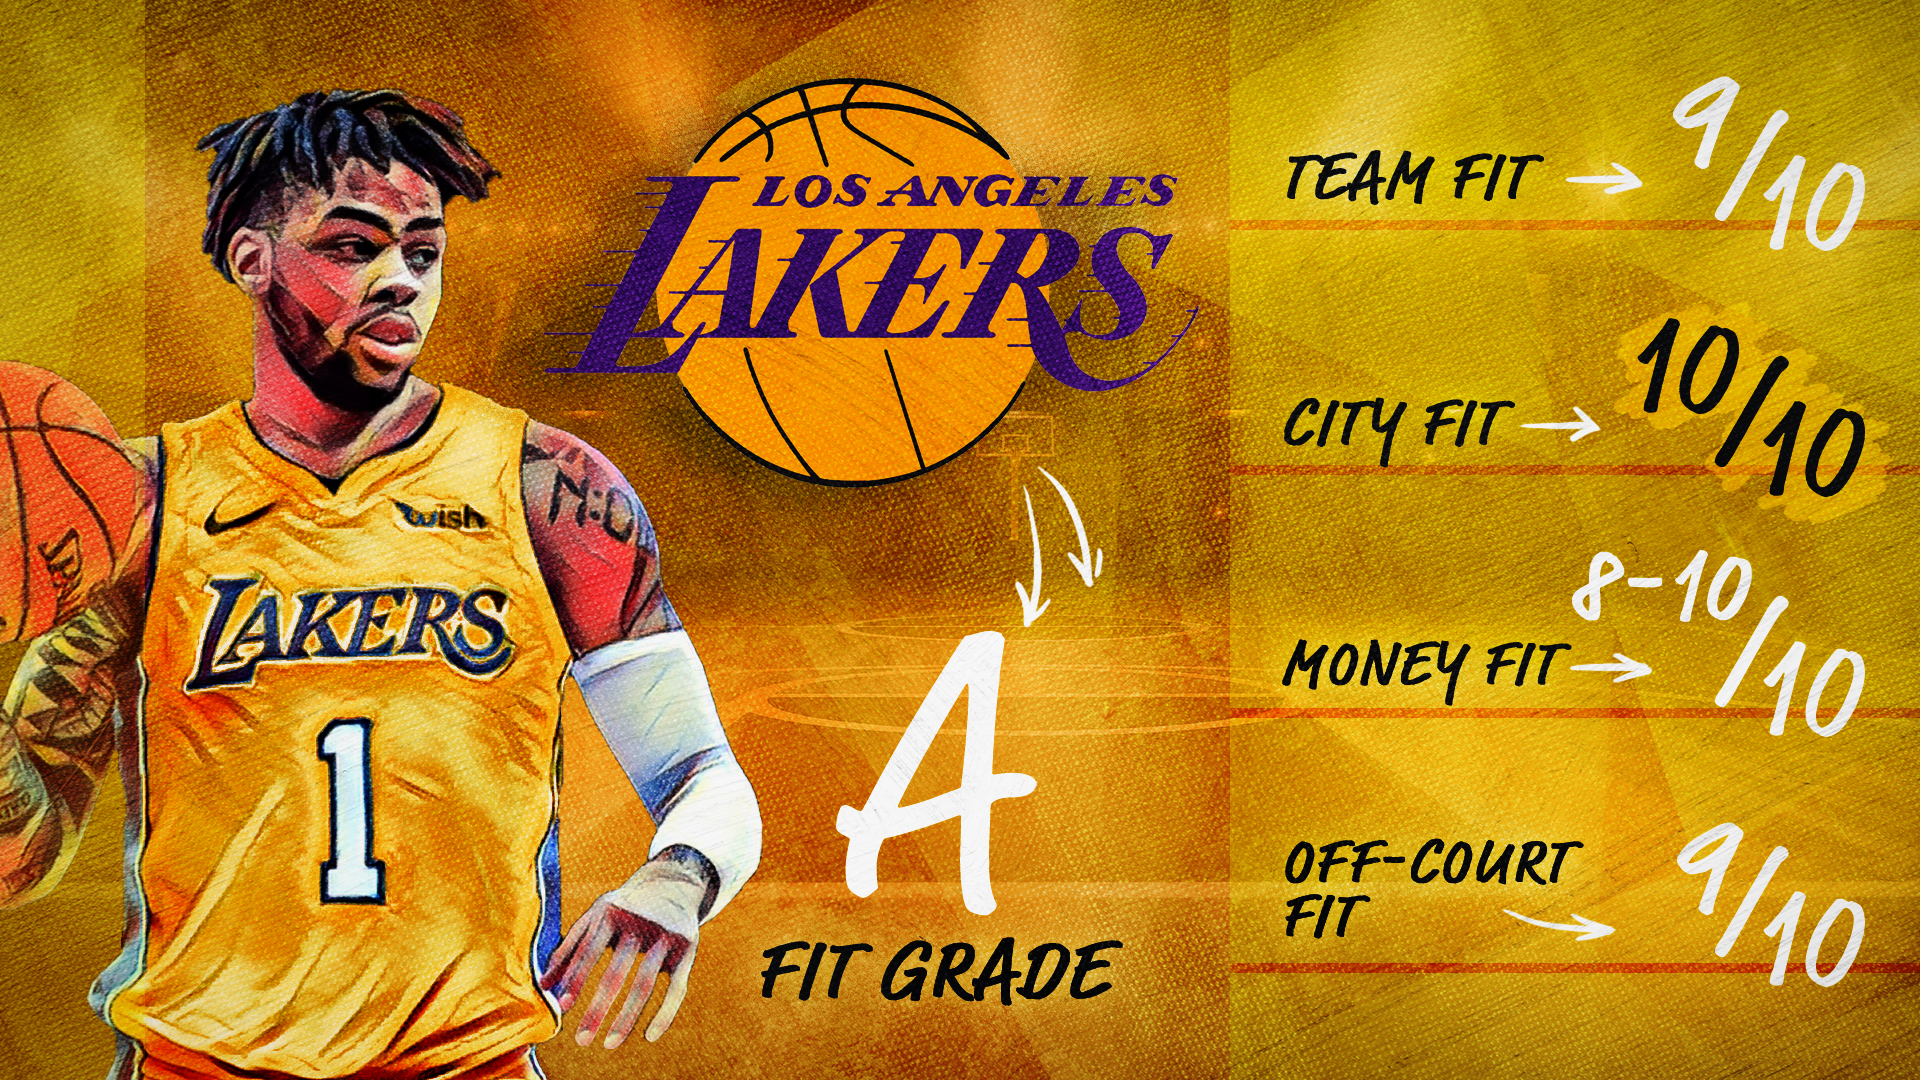 DTV_NBA_FreeAgency_FitGradeGFX_Russel_jd_v2.jpg